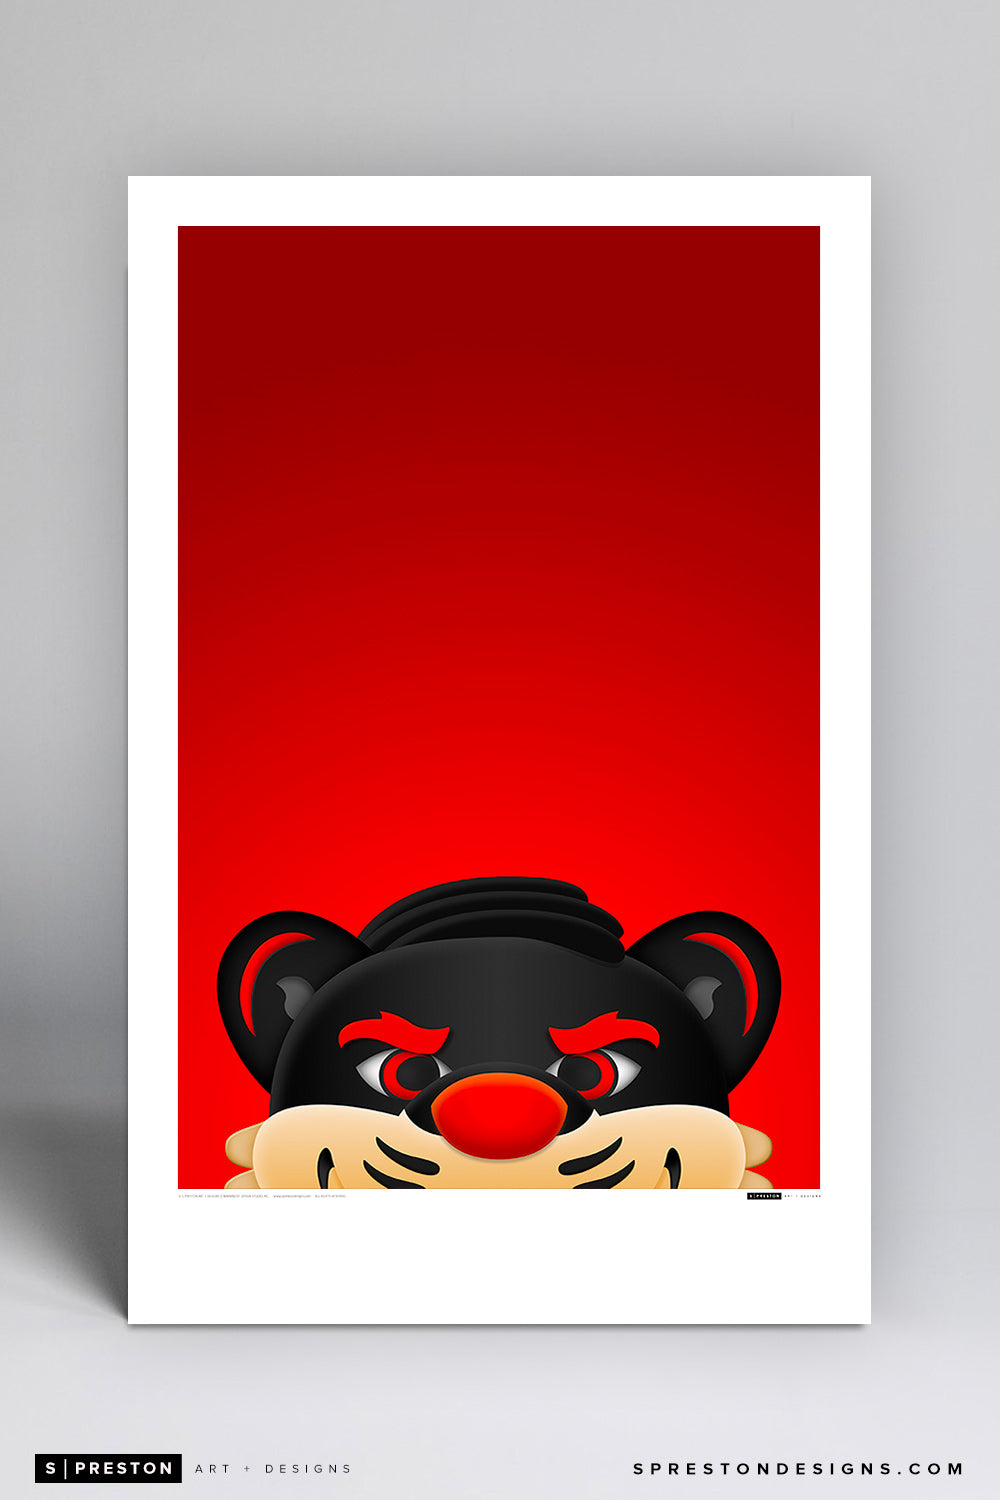 Minimalist Bearcats - University of Cincinnati Art Poster Art Poster - University of Cincinnati - S. Preston Art + Designs